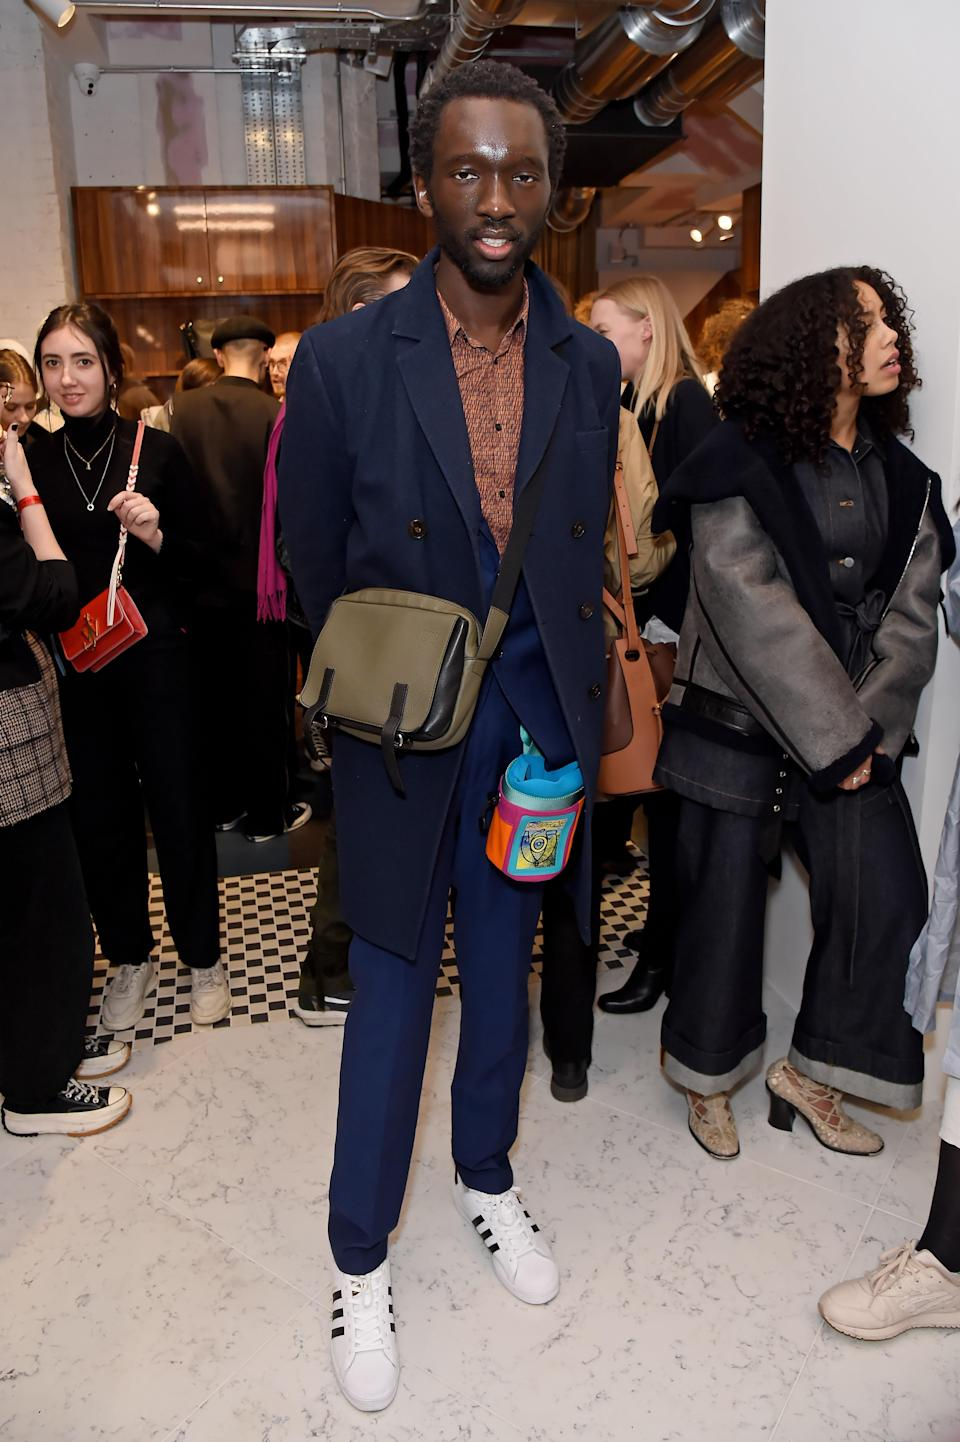 <p>WHERE: The opening of the JW Anderson flagship store in London </p> <p>WHEN: March 12, 2020 </p> <p>WHY: The model presents a convincing theory that two bags are better than one. </p>